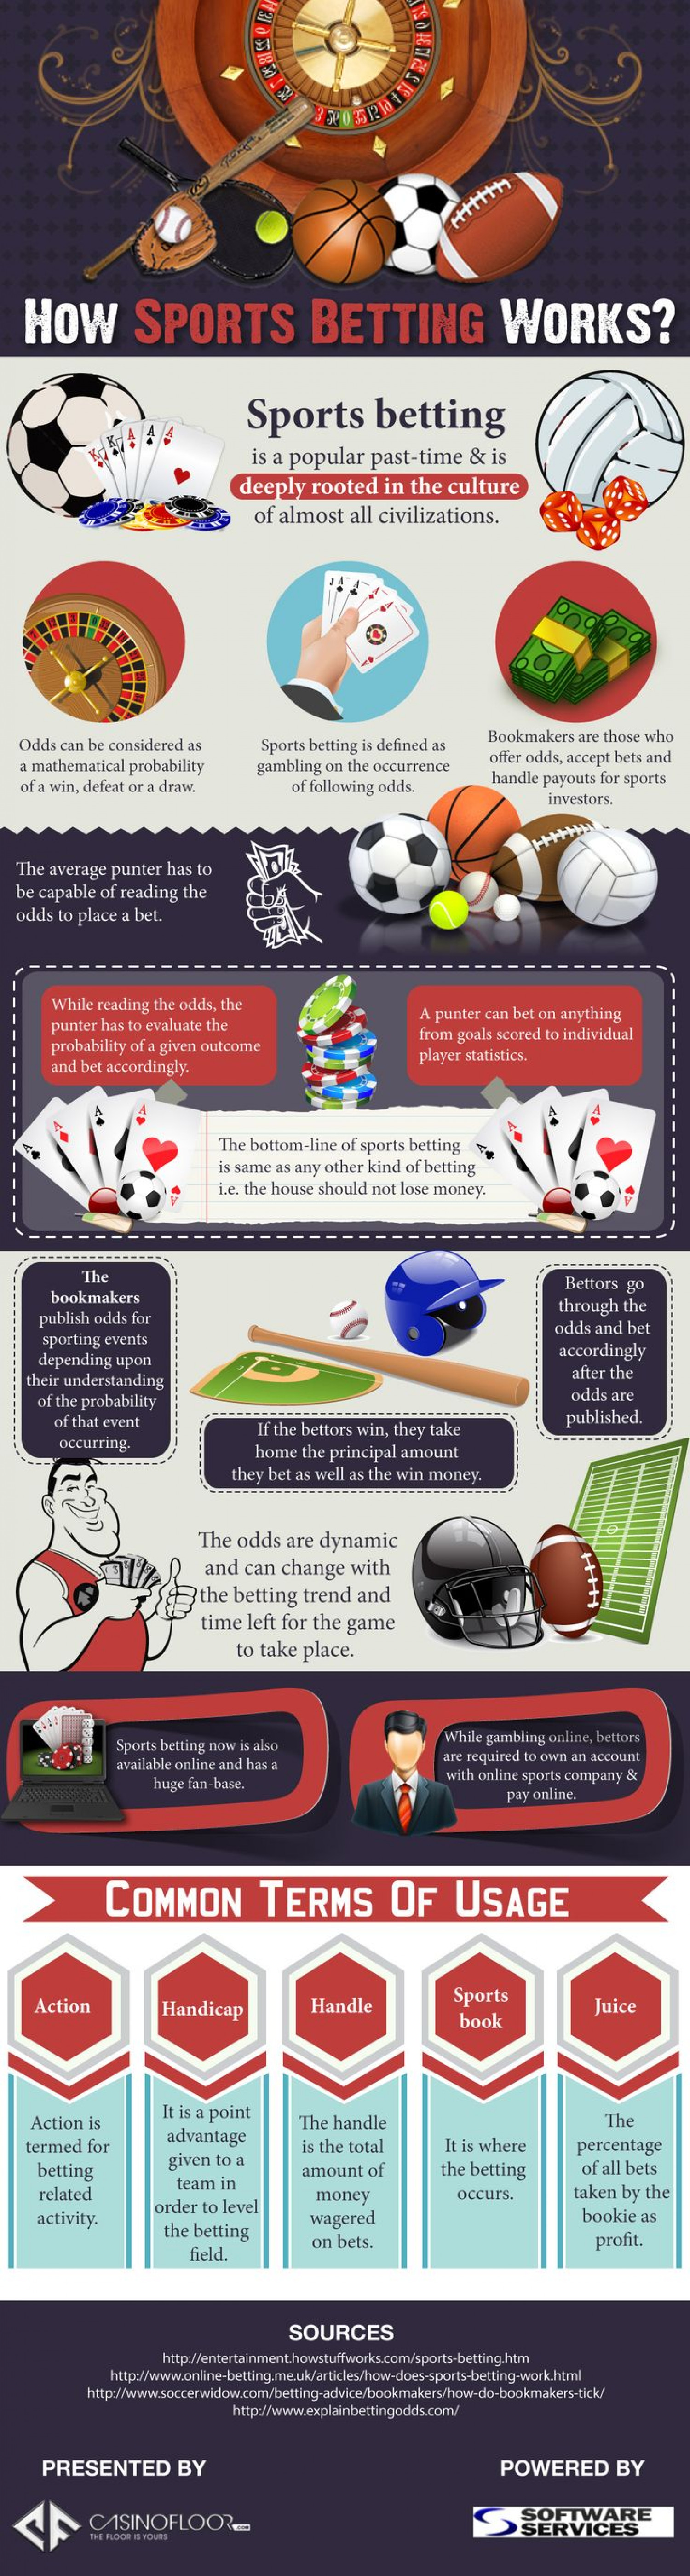 How Sports Betting Works? Infographic